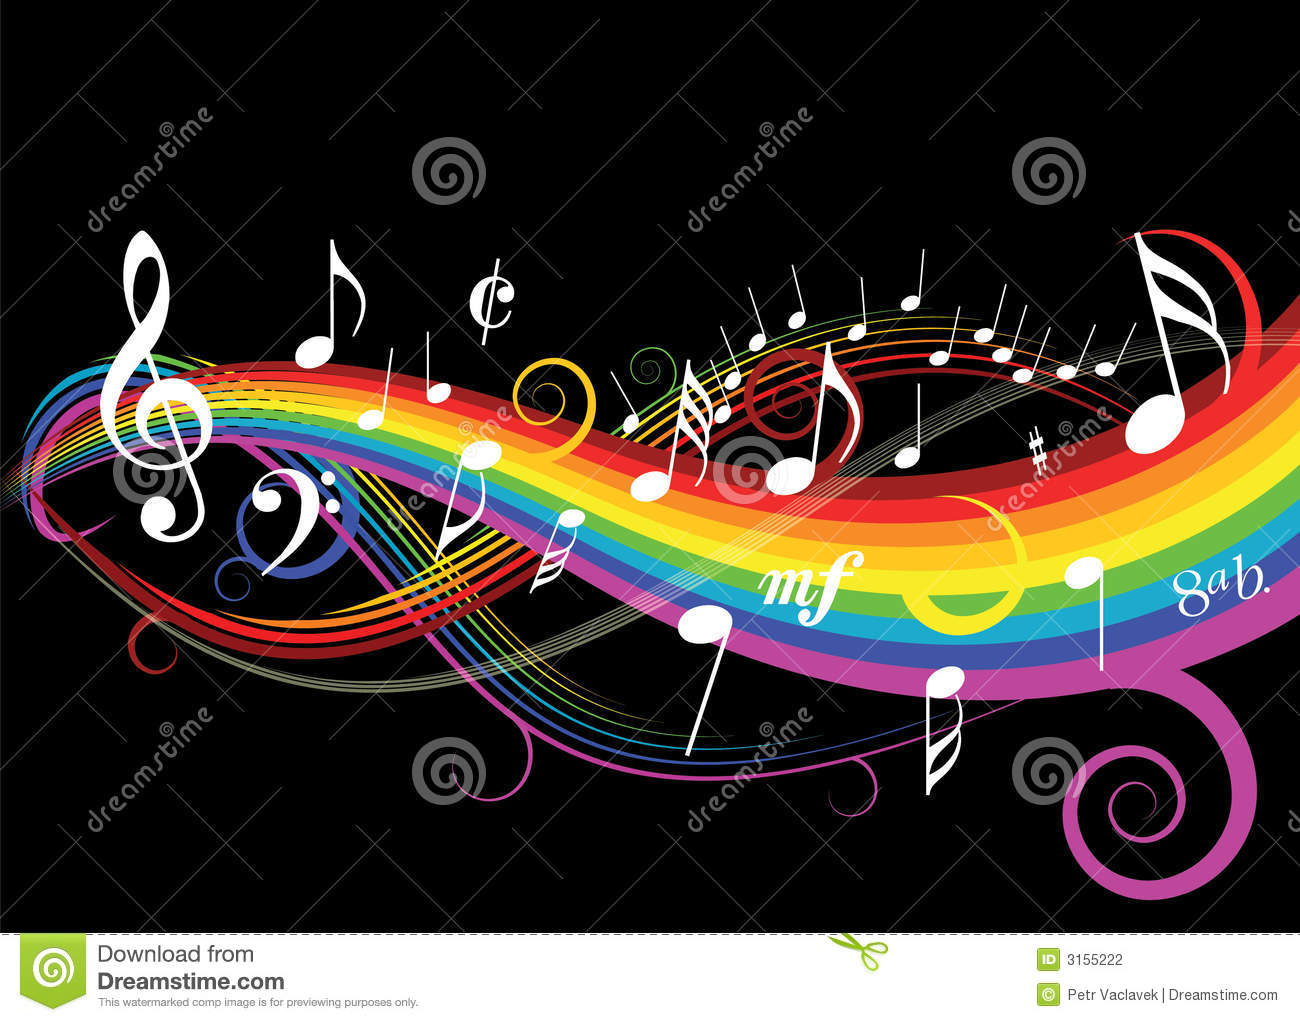 Http Www Dreamstime Com Stock Photography Music Theme Image3155222